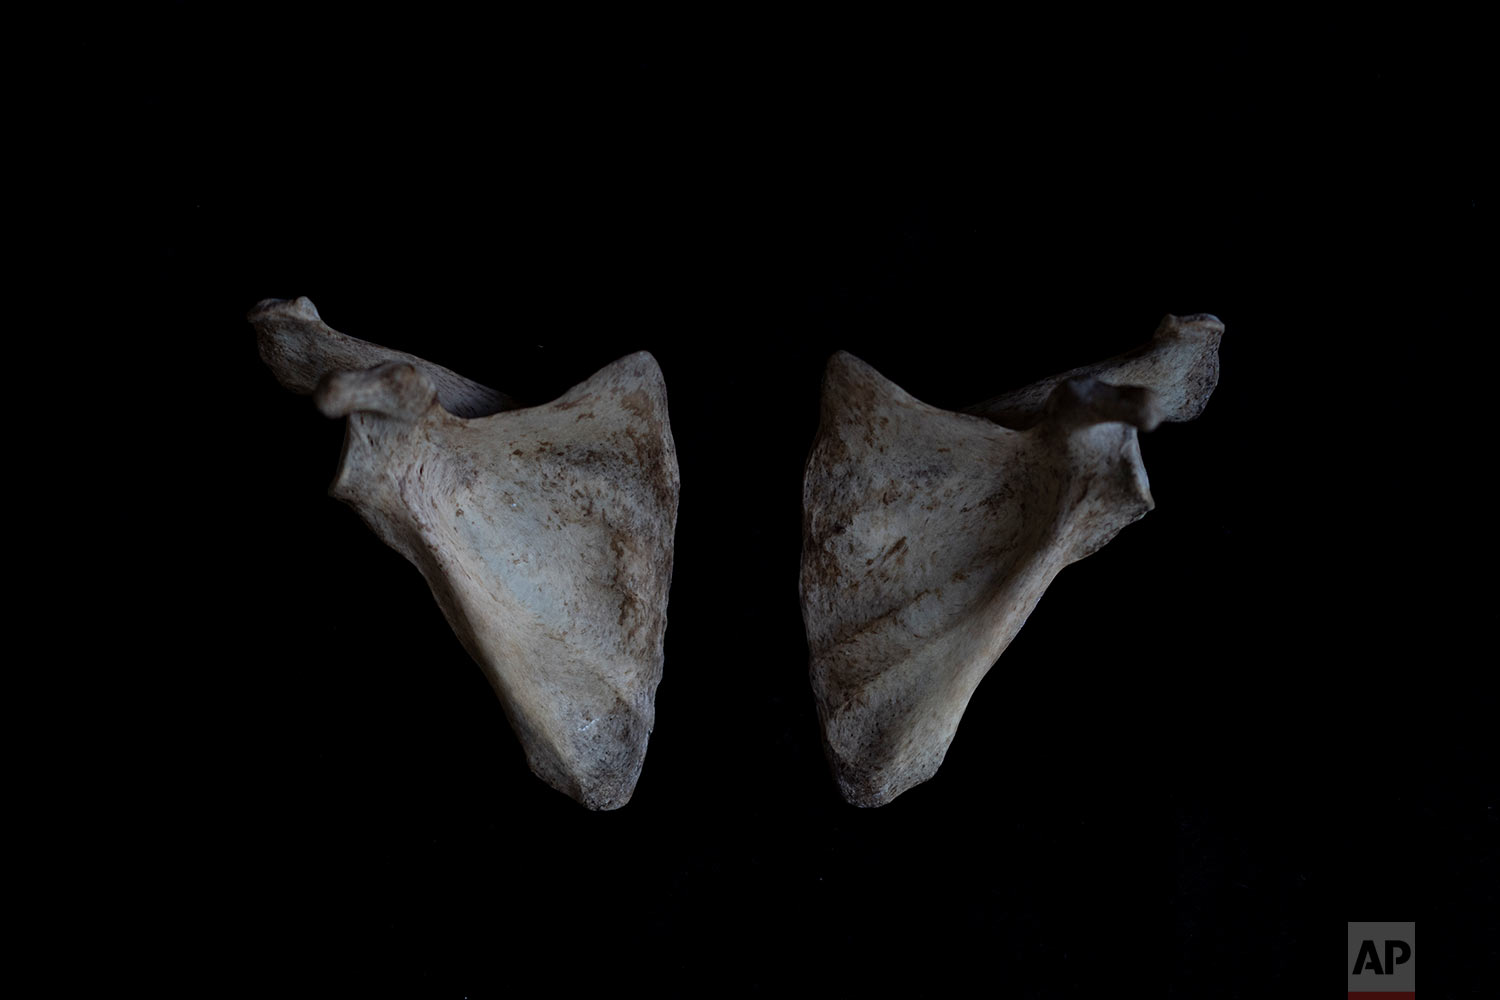 In this Monday Oct. 1, 2018 photo, the hyoid bone of a black unidentified adult male is seen. The remains were found in August 2018 in a field in Johannesburg and brought to a mortuary for identification purposes. Once a demographic profile is estimated it will go to the victim identification center in the South African police department to create a facial reconstruction. (AP Photo/Bram Janssen)